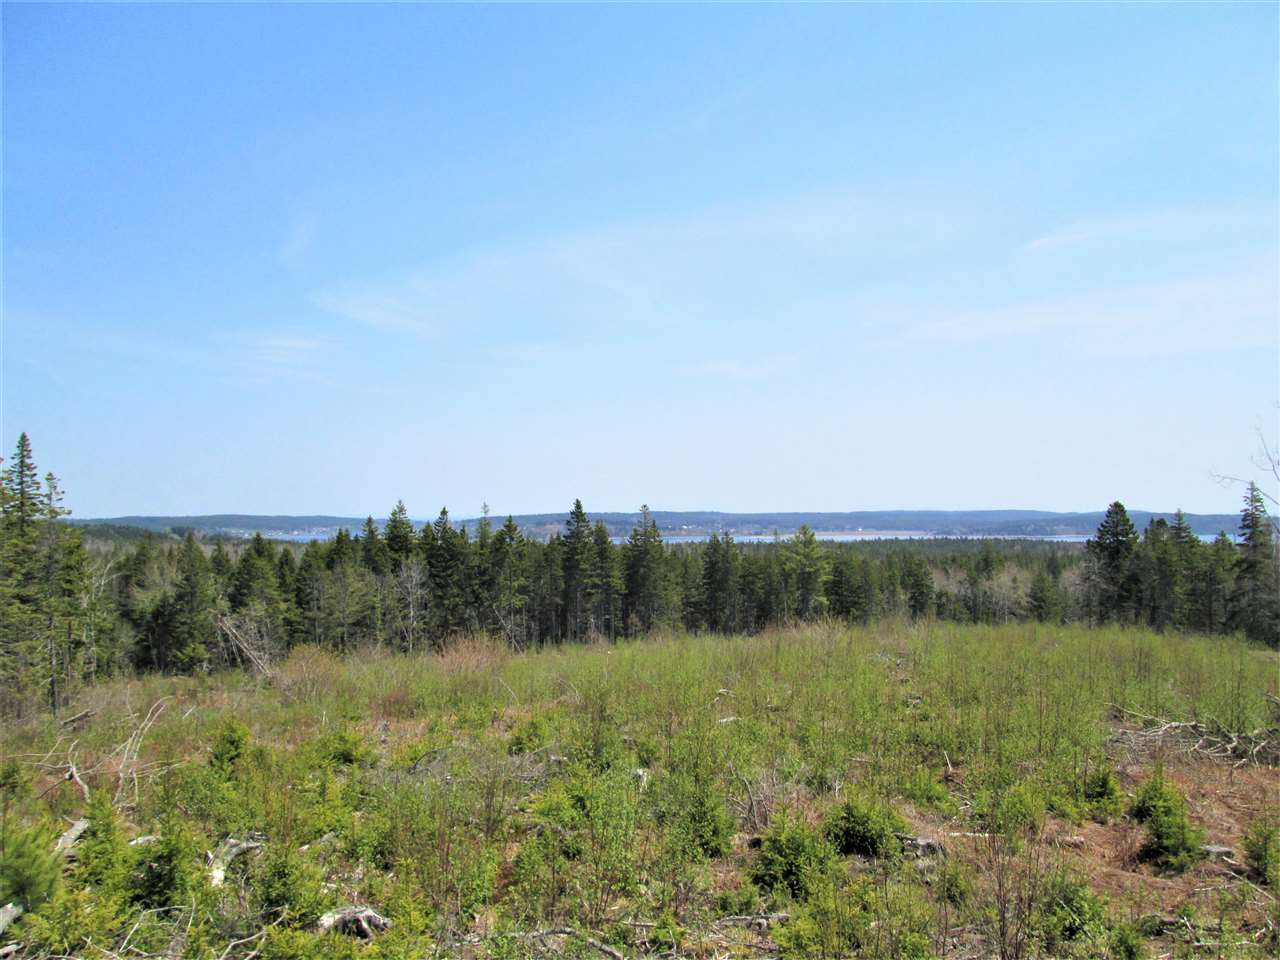 Main Photo: 3 Lots Hwy 331 Dublin Shore in Dublin Shore: 405-Lunenburg County Vacant Land for sale (South Shore)  : MLS® # 201712817